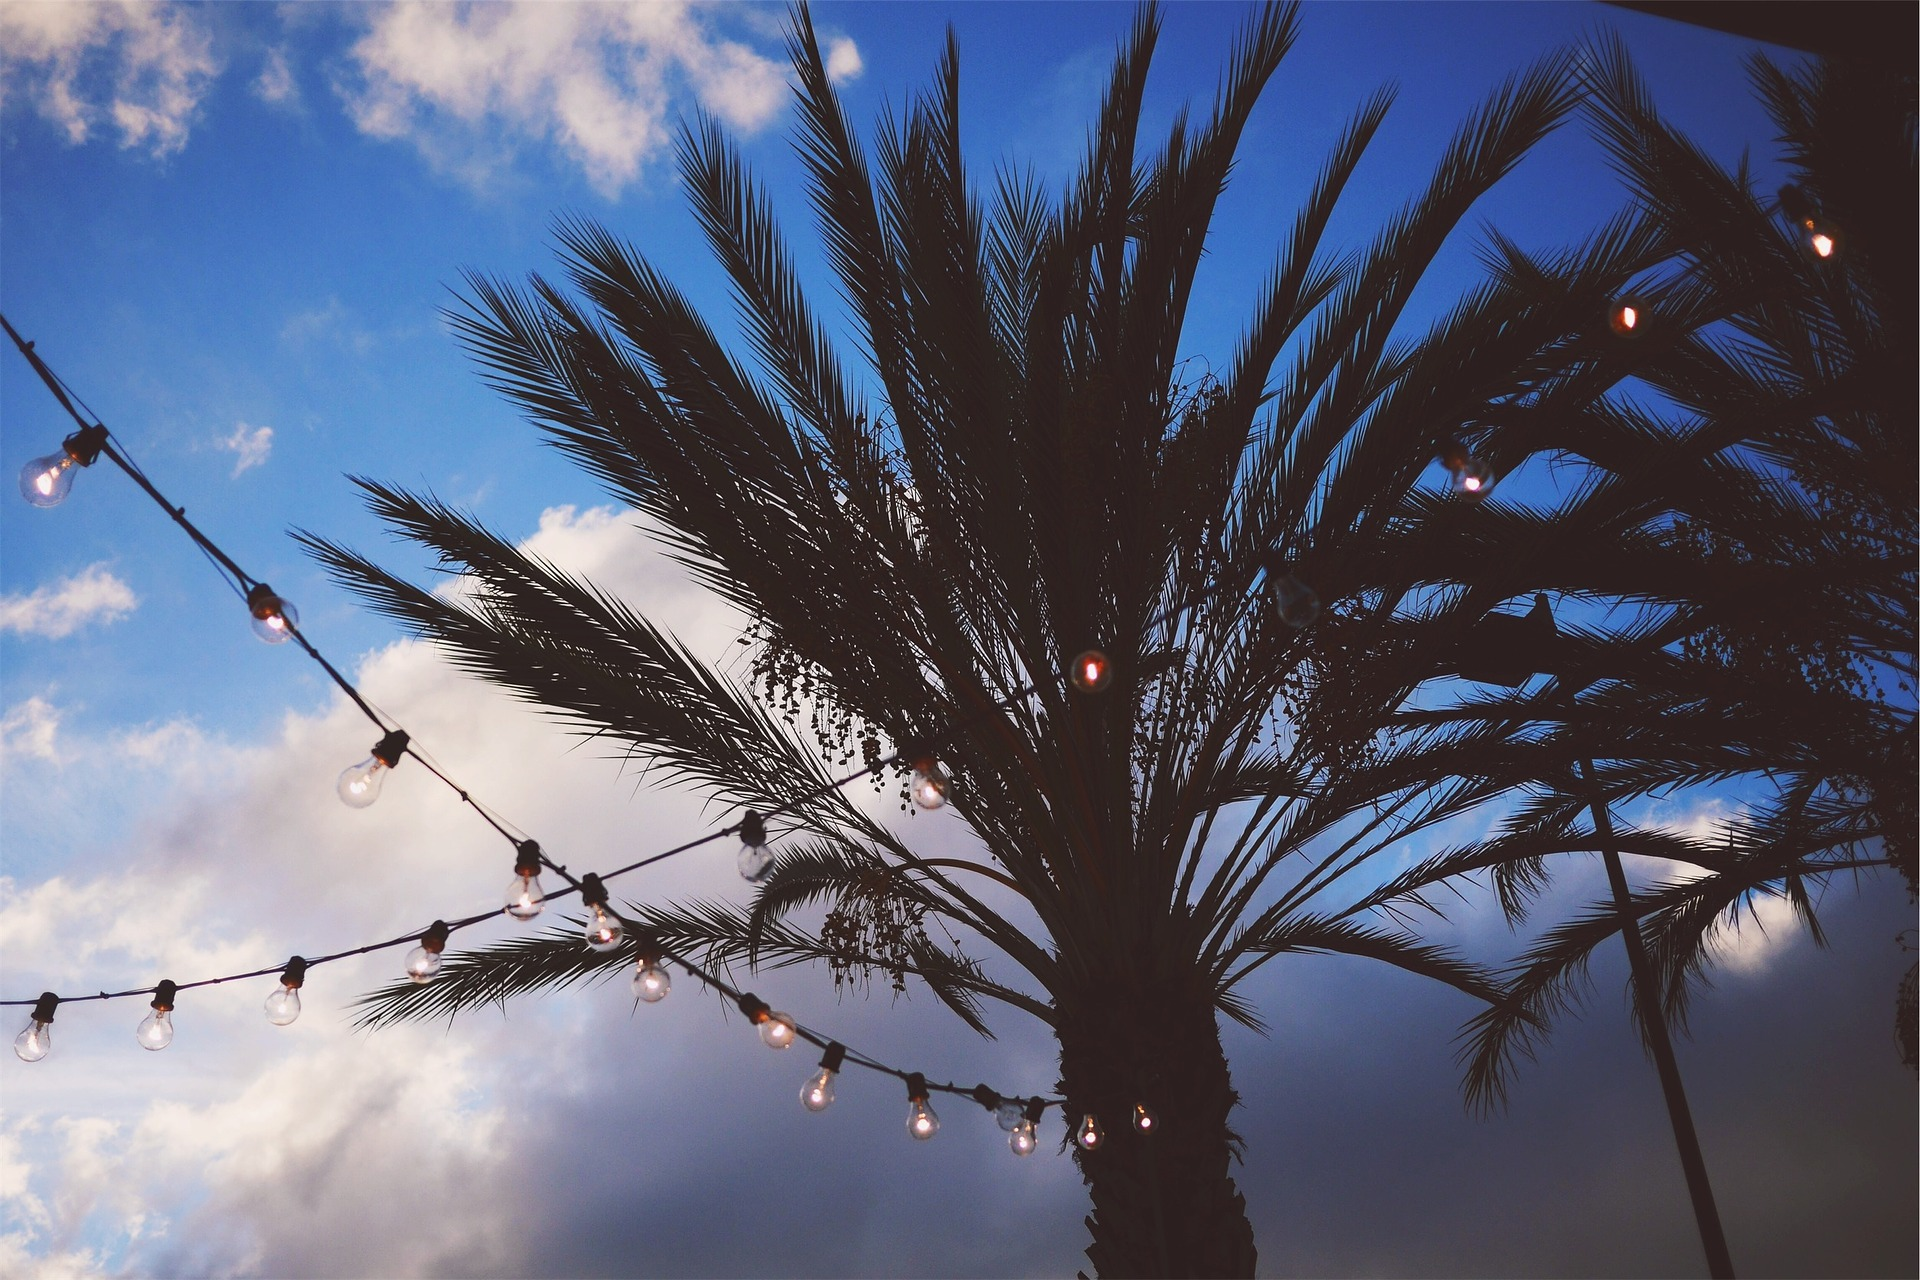 image of palm trees at night with string lights